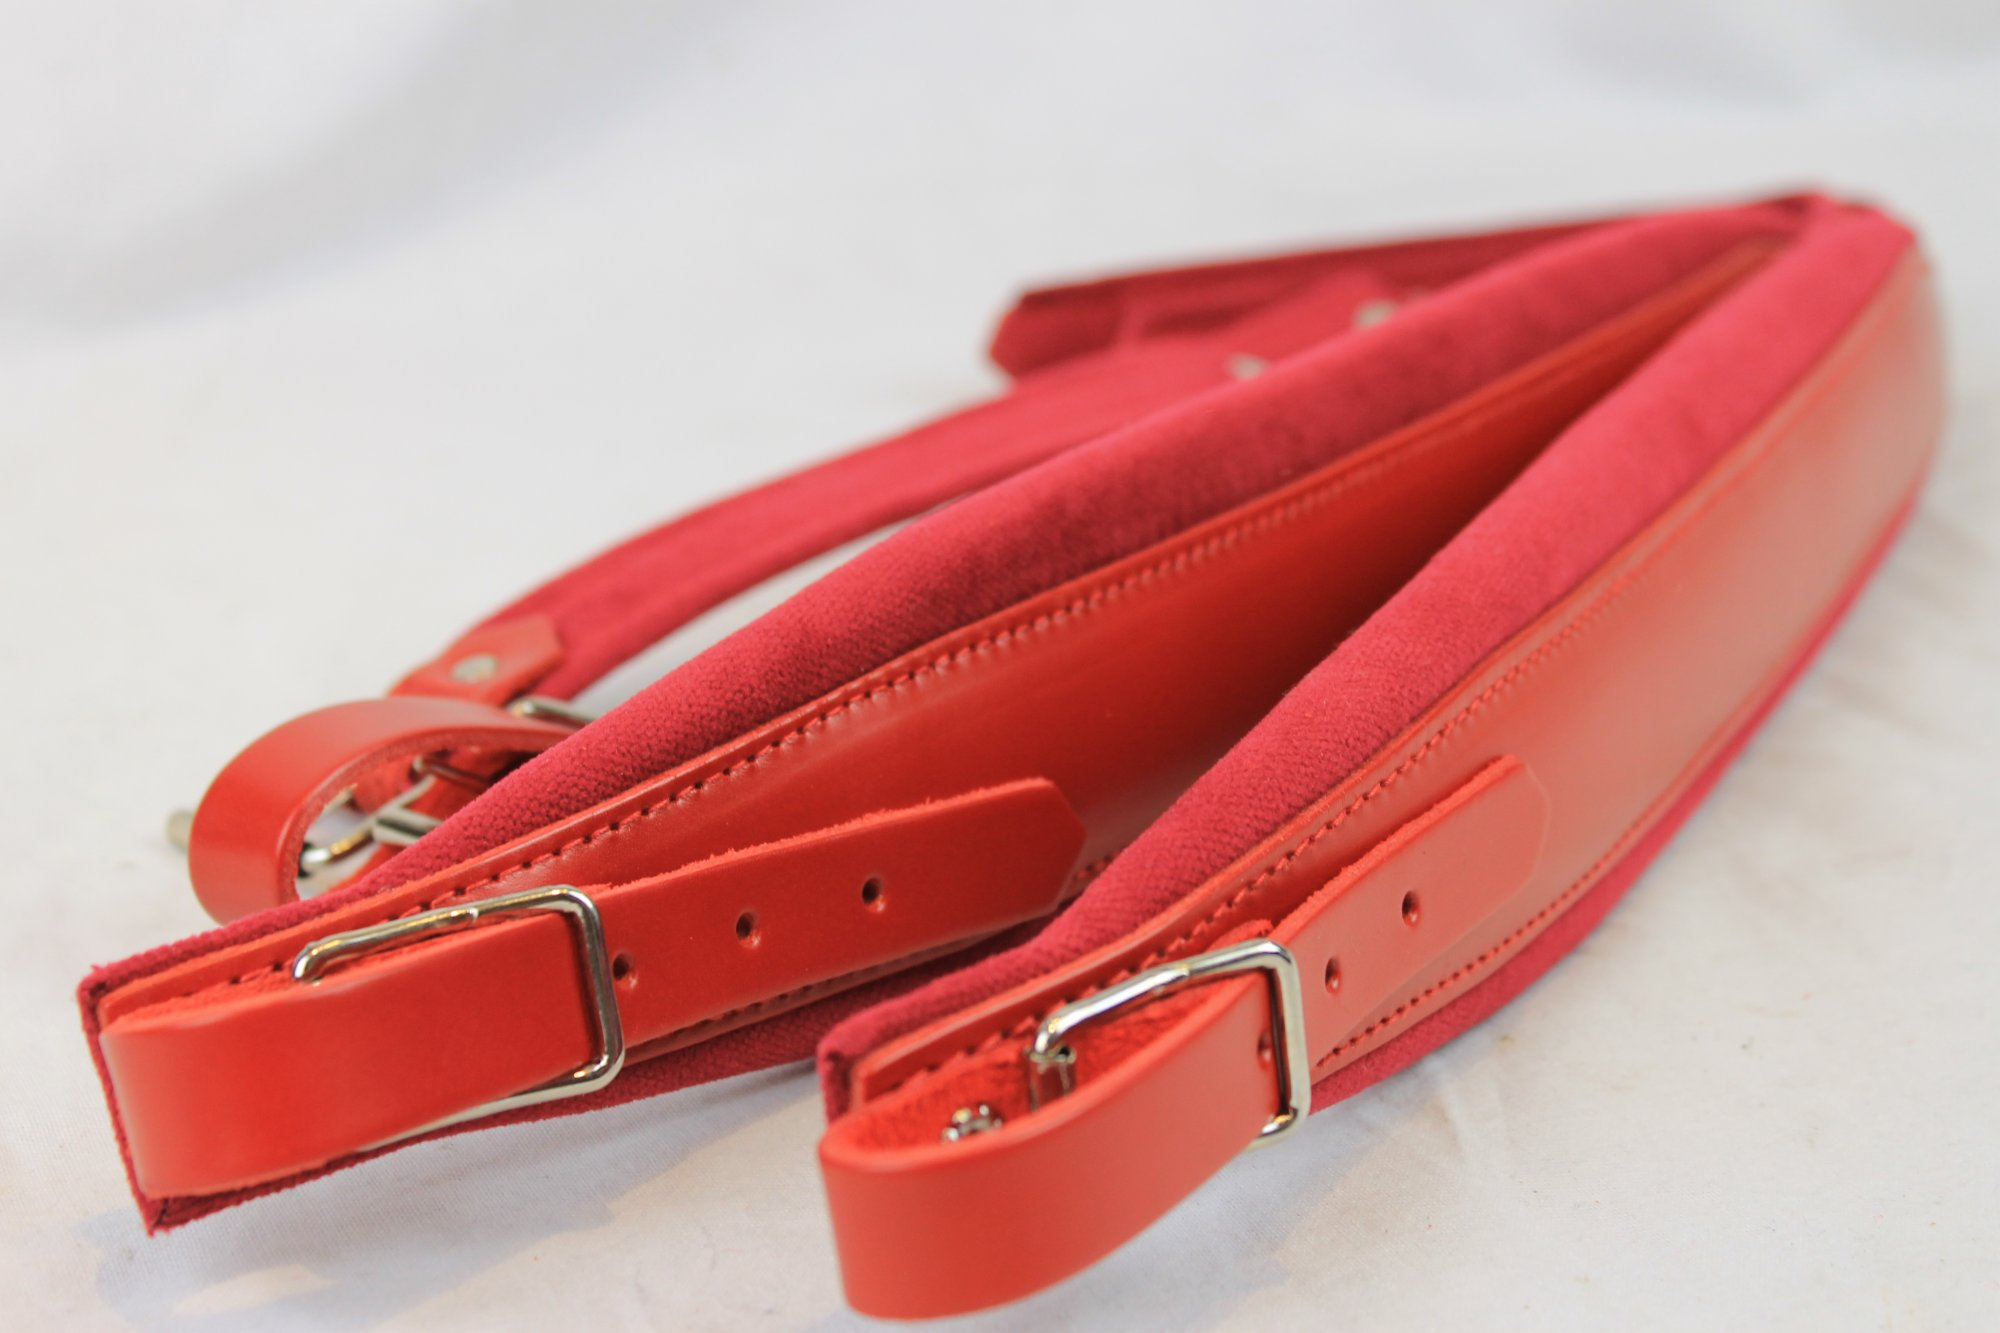 New Red Leather Velour Fuselli Accordion Shoulder Straps Width (7cm / 2.8in) Length (85~105cm / 33.5~41.3in)